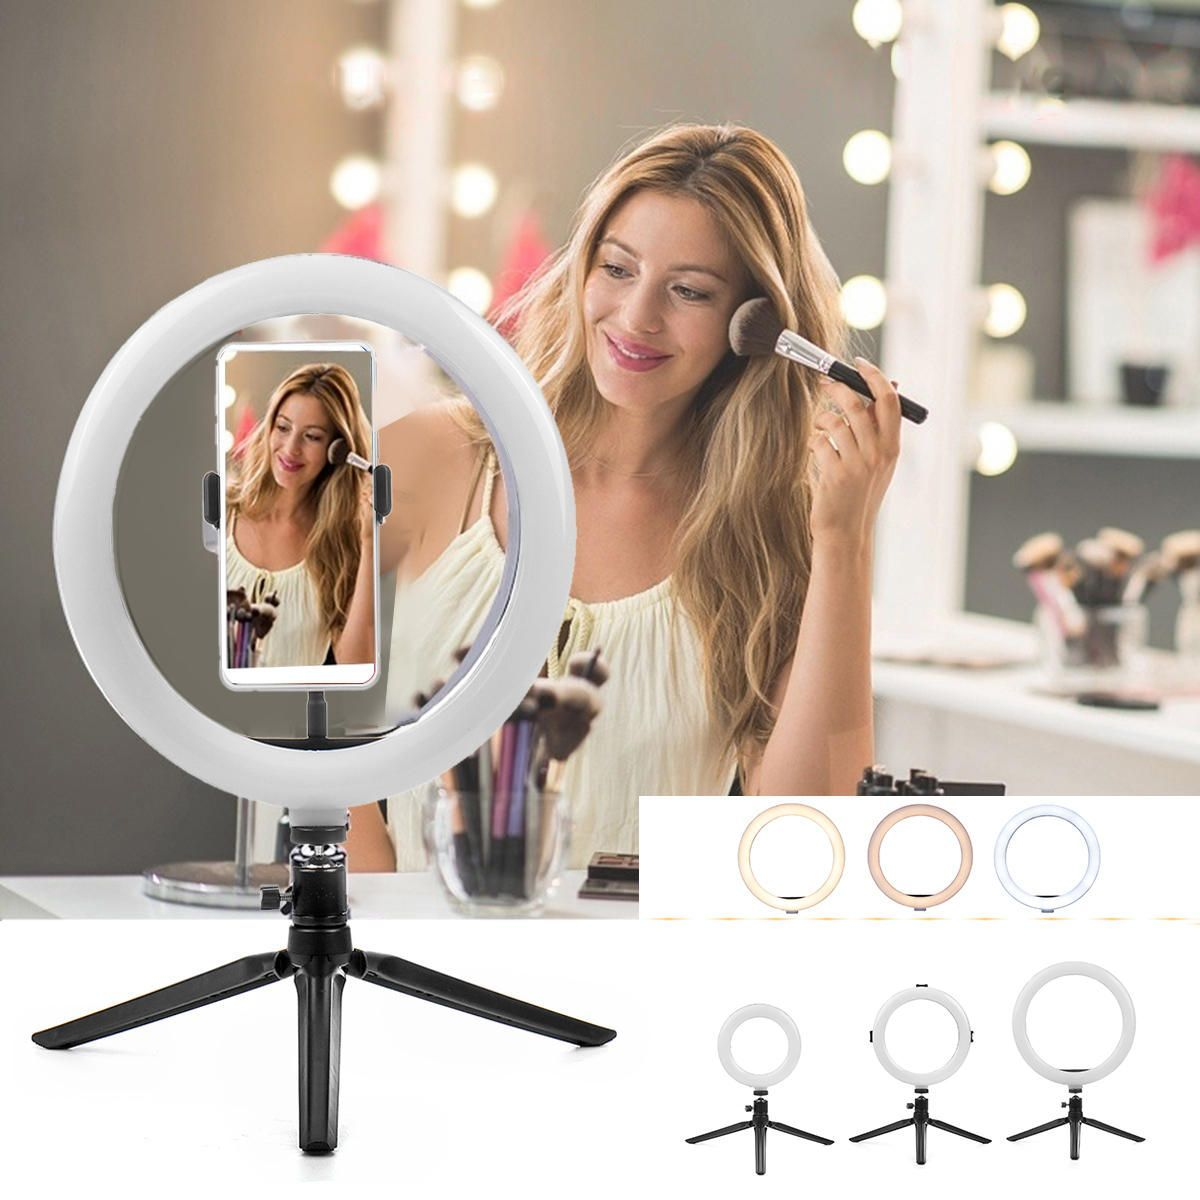 Beleuchtung Fotografie Handyhalter Lampe Led Light Makeup Products Makeup Ring Ringlicht Selfie Stativ Selfie Ring Light Camera Lamp Led Ring Light